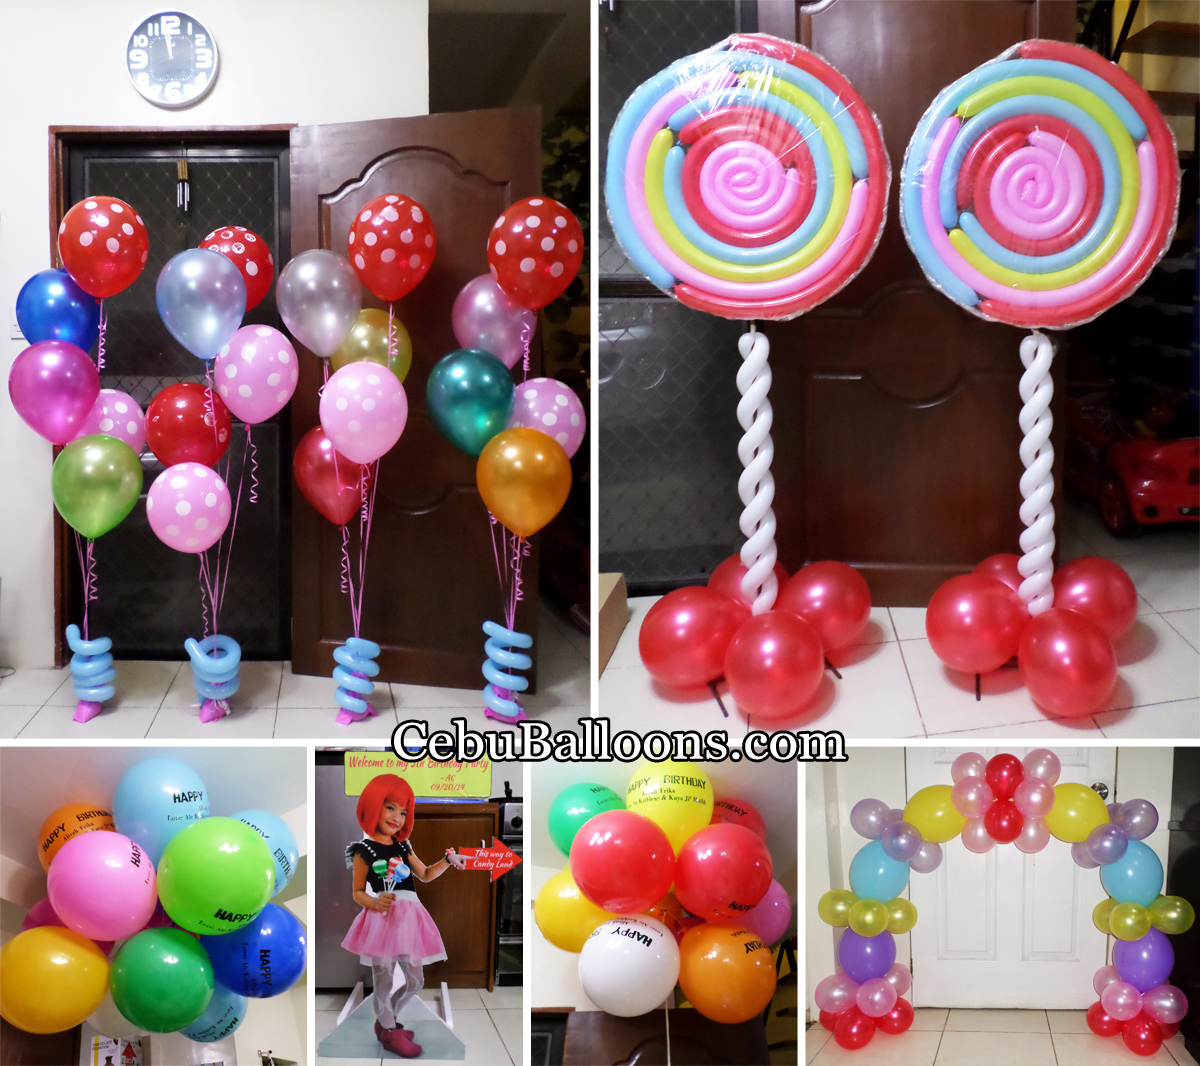 Candyland cebu balloons and party supplies for Balloon decoration images party